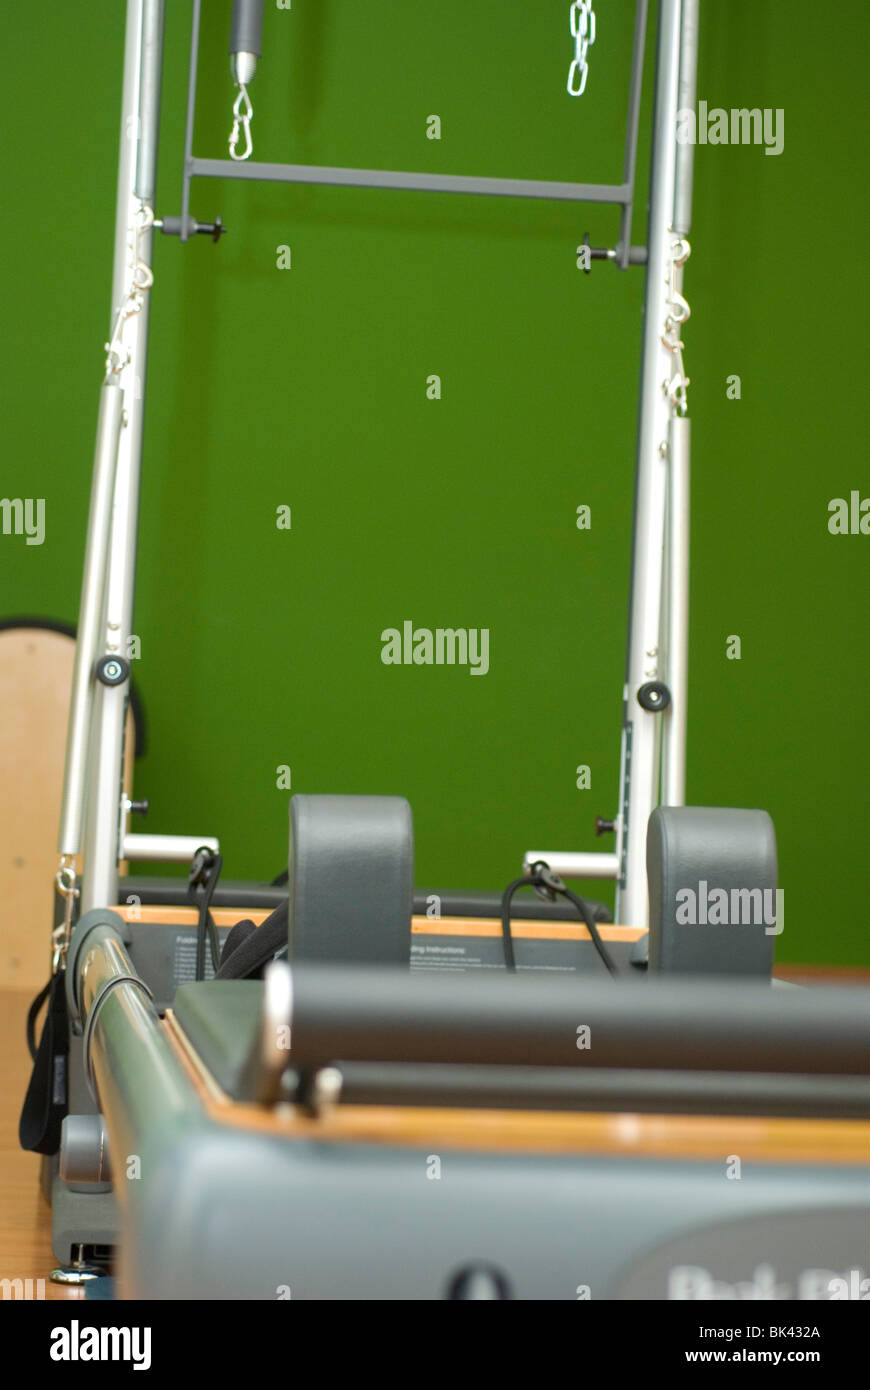 Pilates studio with Barrel, chair, reformer, fit ball, dumbbells - Stock Image